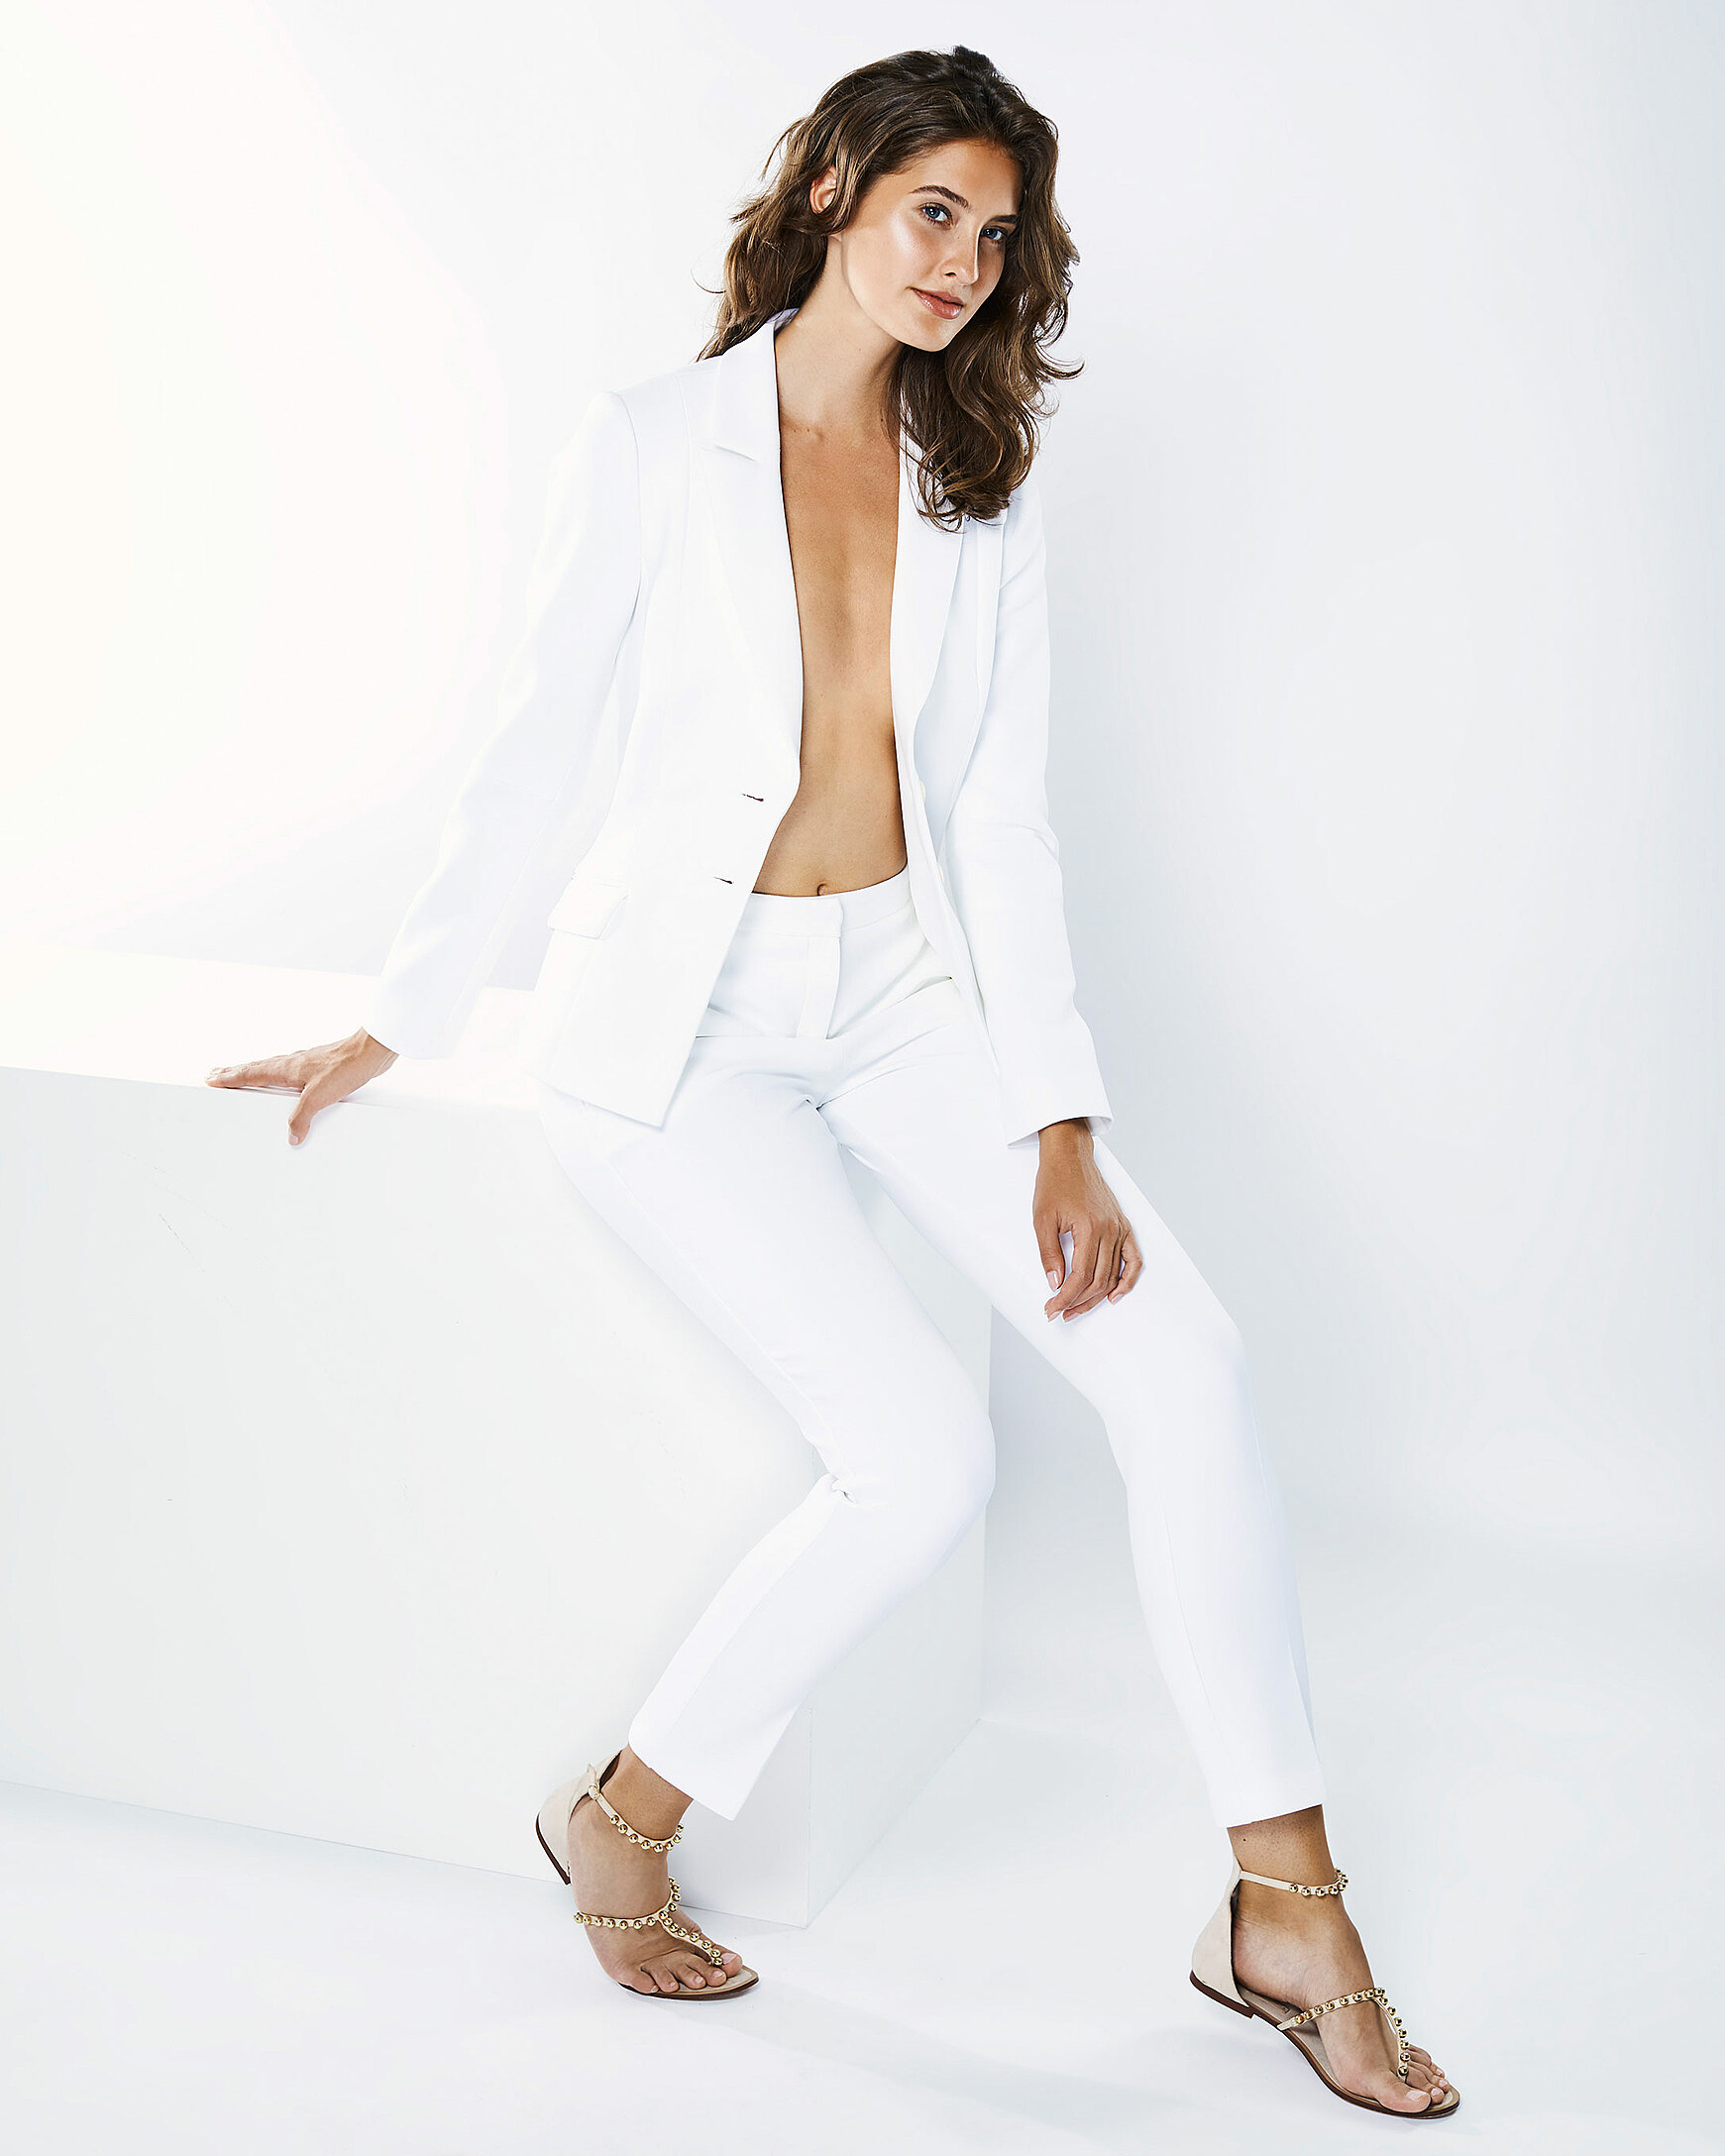 A brown hair model in a white blazer with white tights sits in a white setting